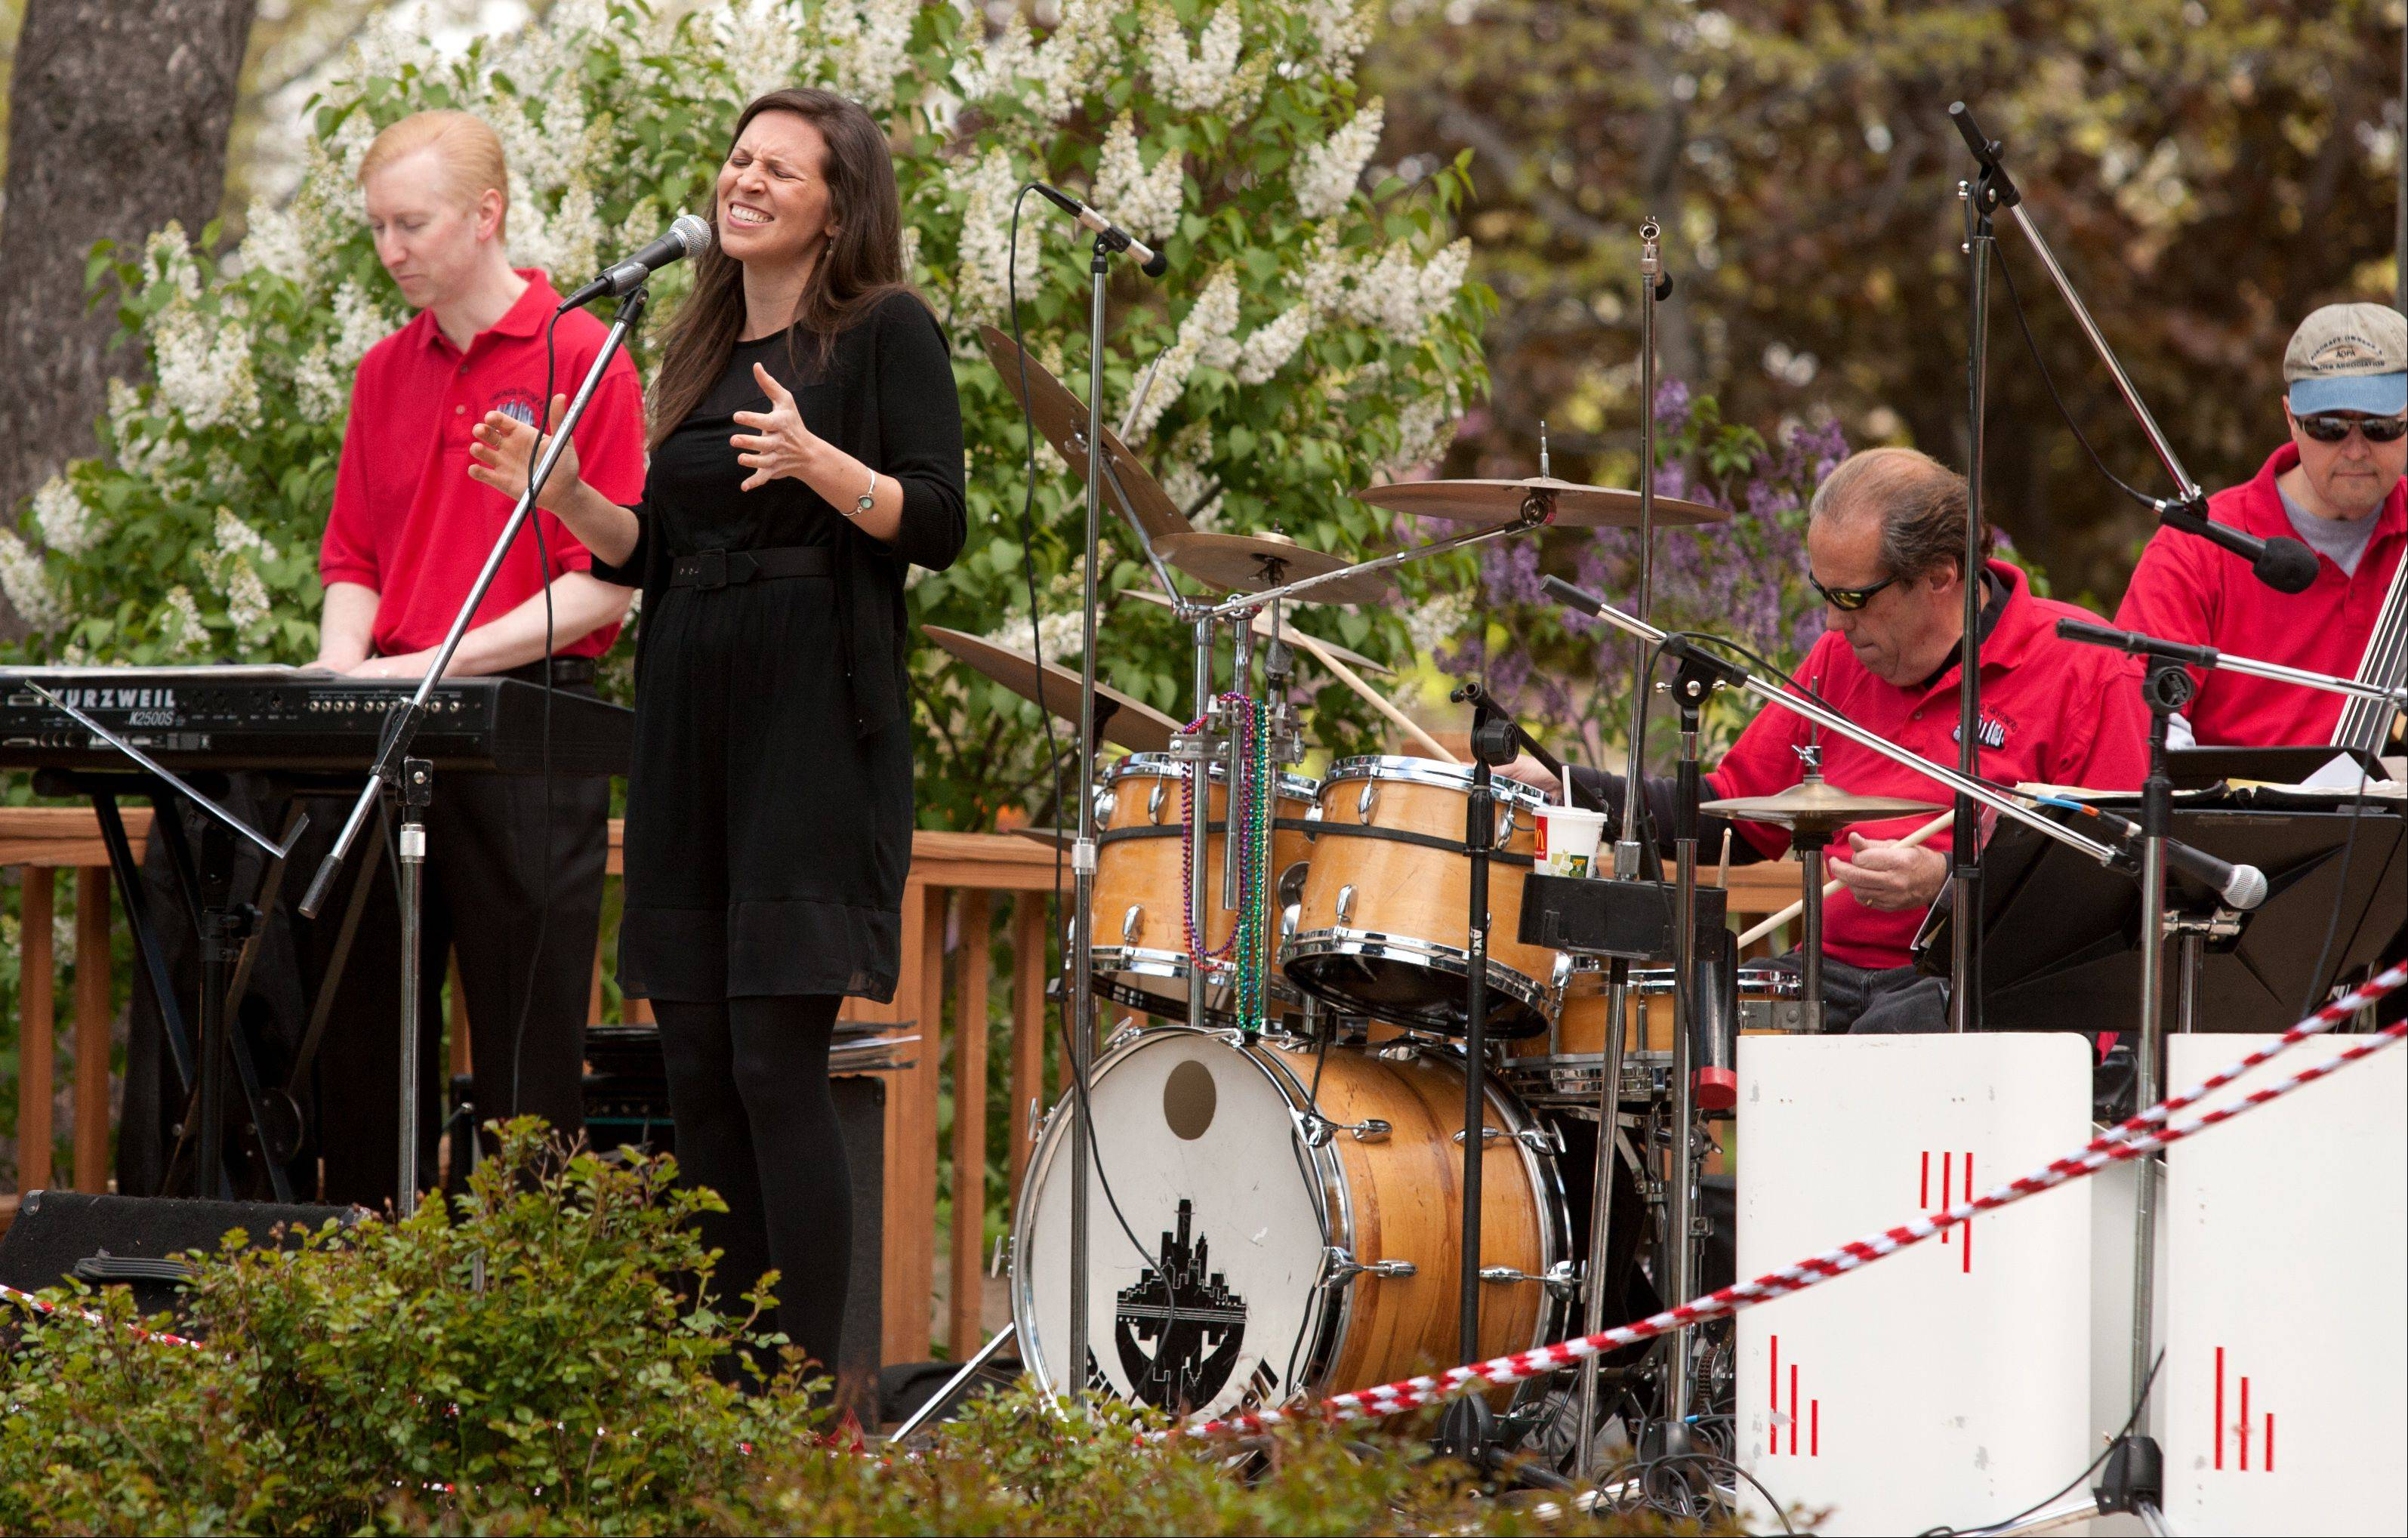 Lead singer Leslie Beukelman, of Bill O�Connell�s Chicago Skyliners Big Band, performs at Lilacia Park in Lombard Sunday. O�Connell plays the drums.